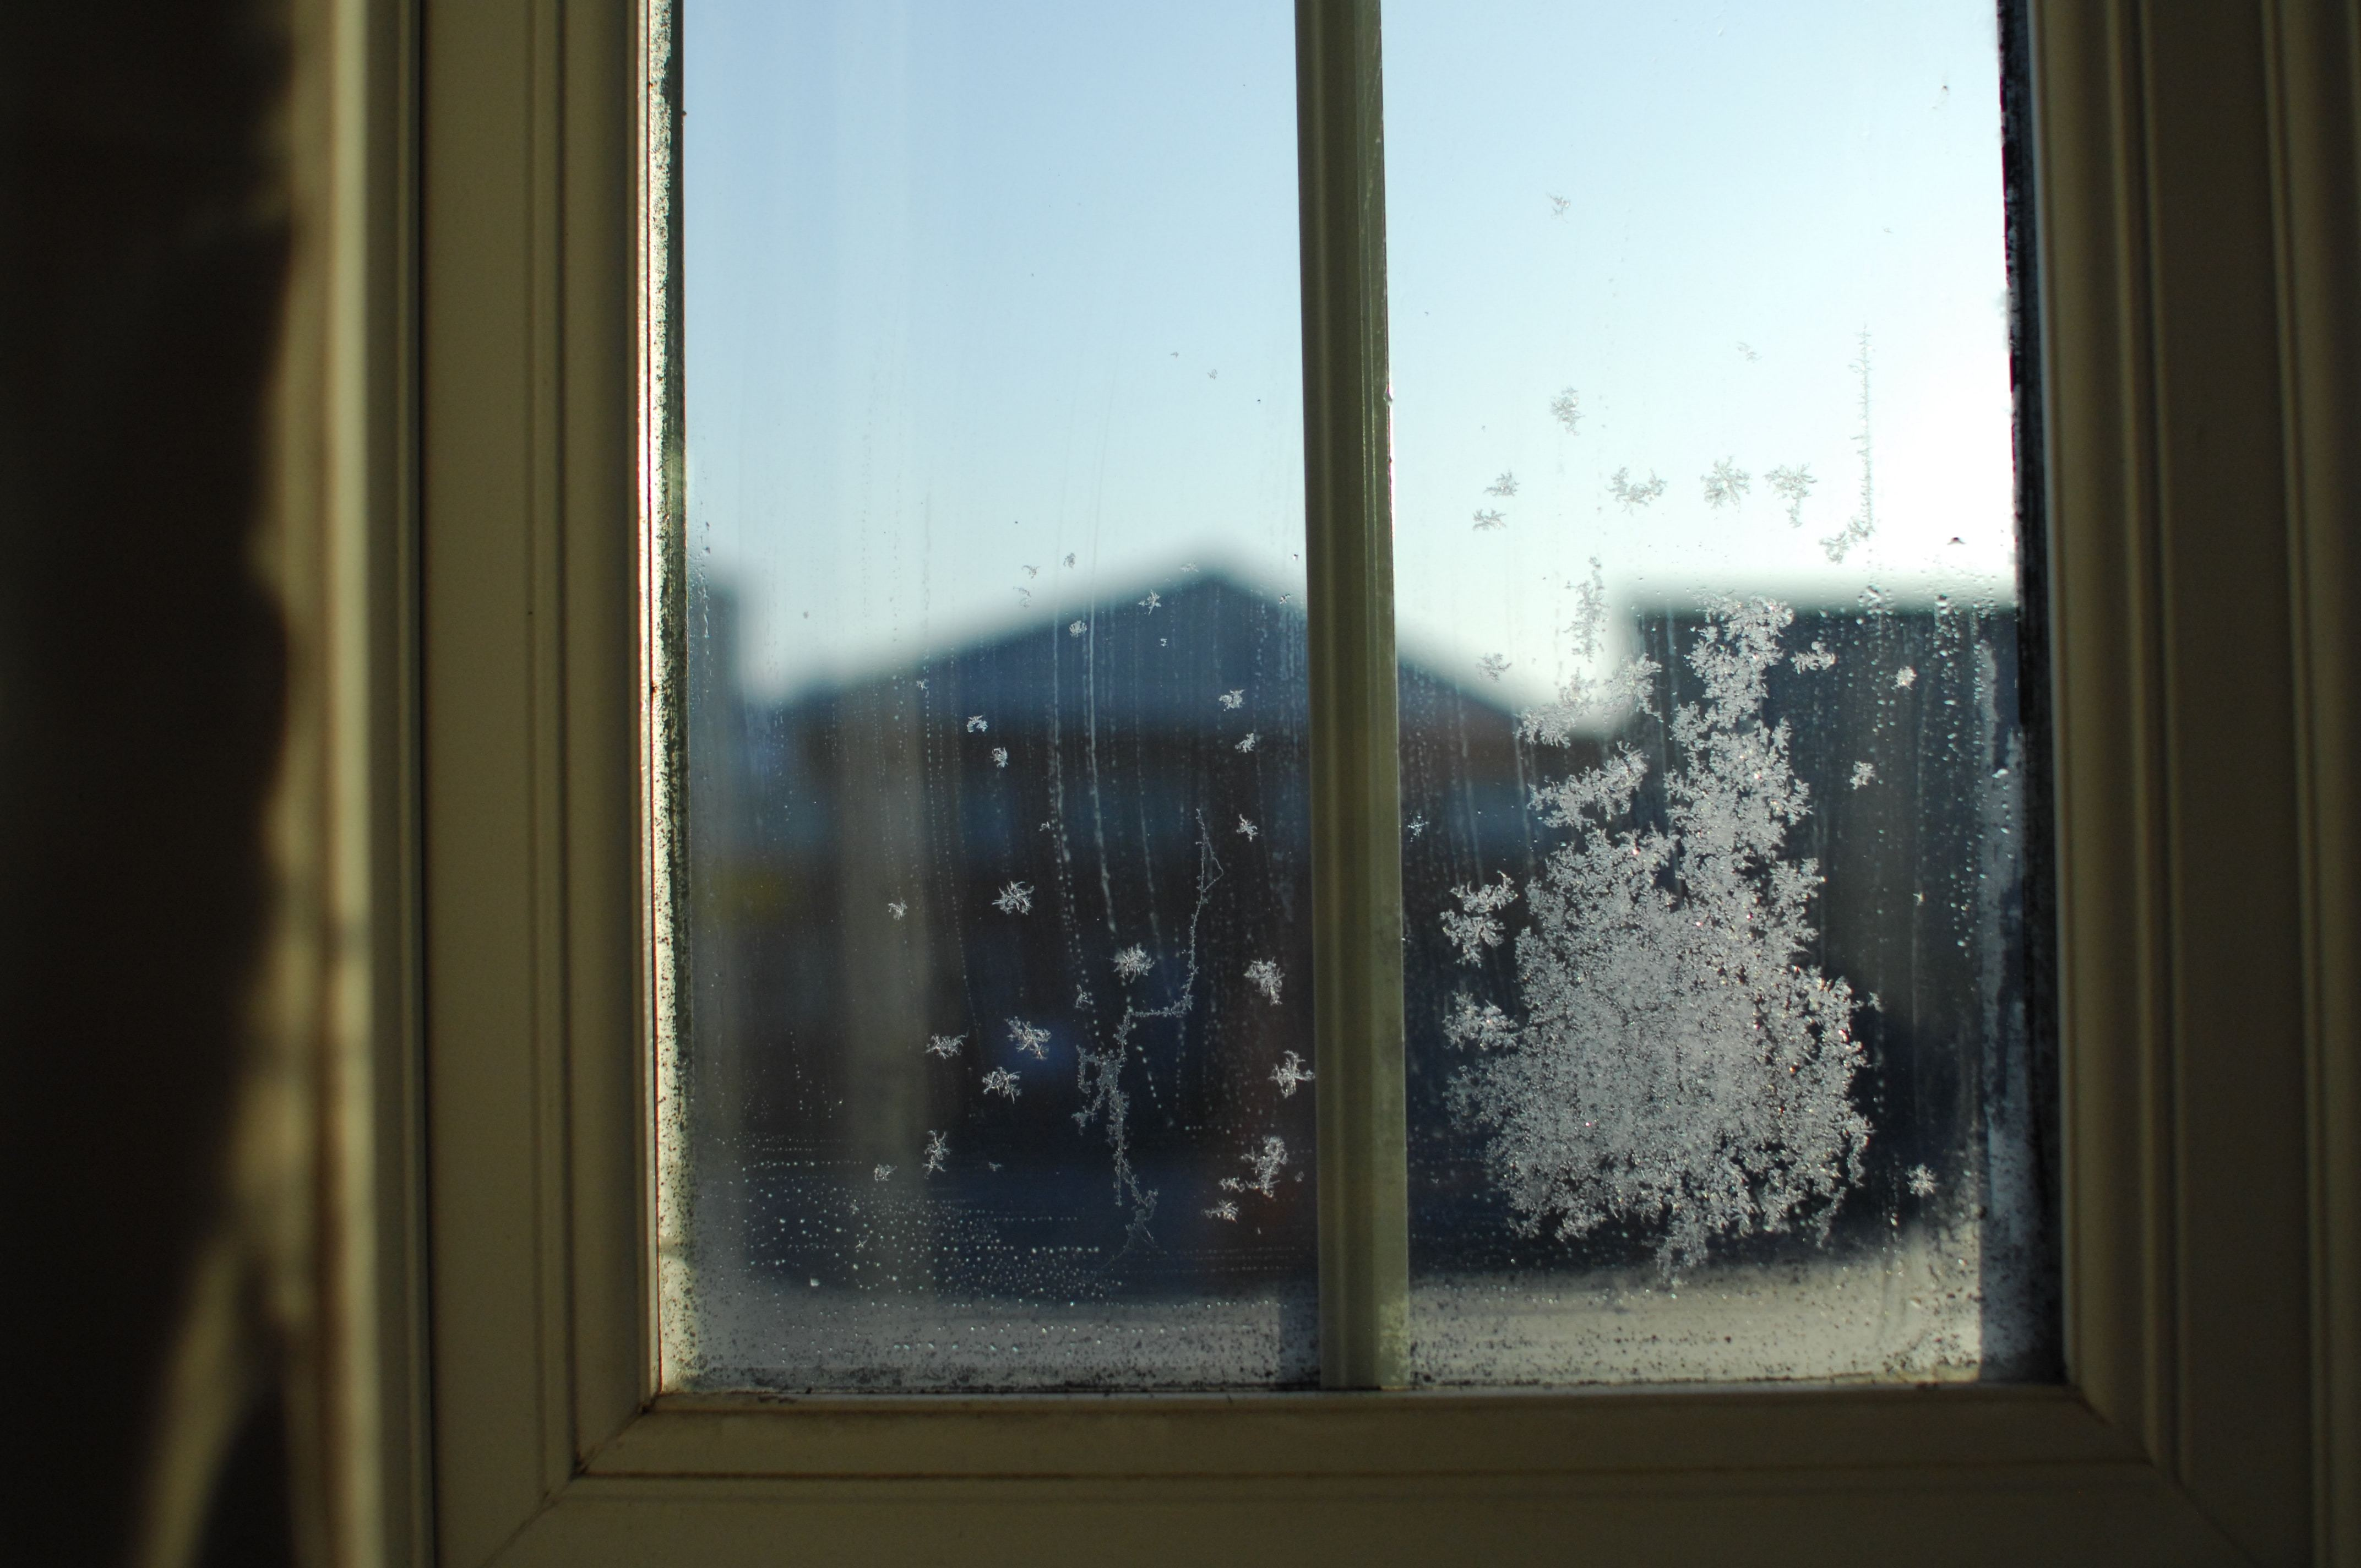 ice on window panes with yellow trim